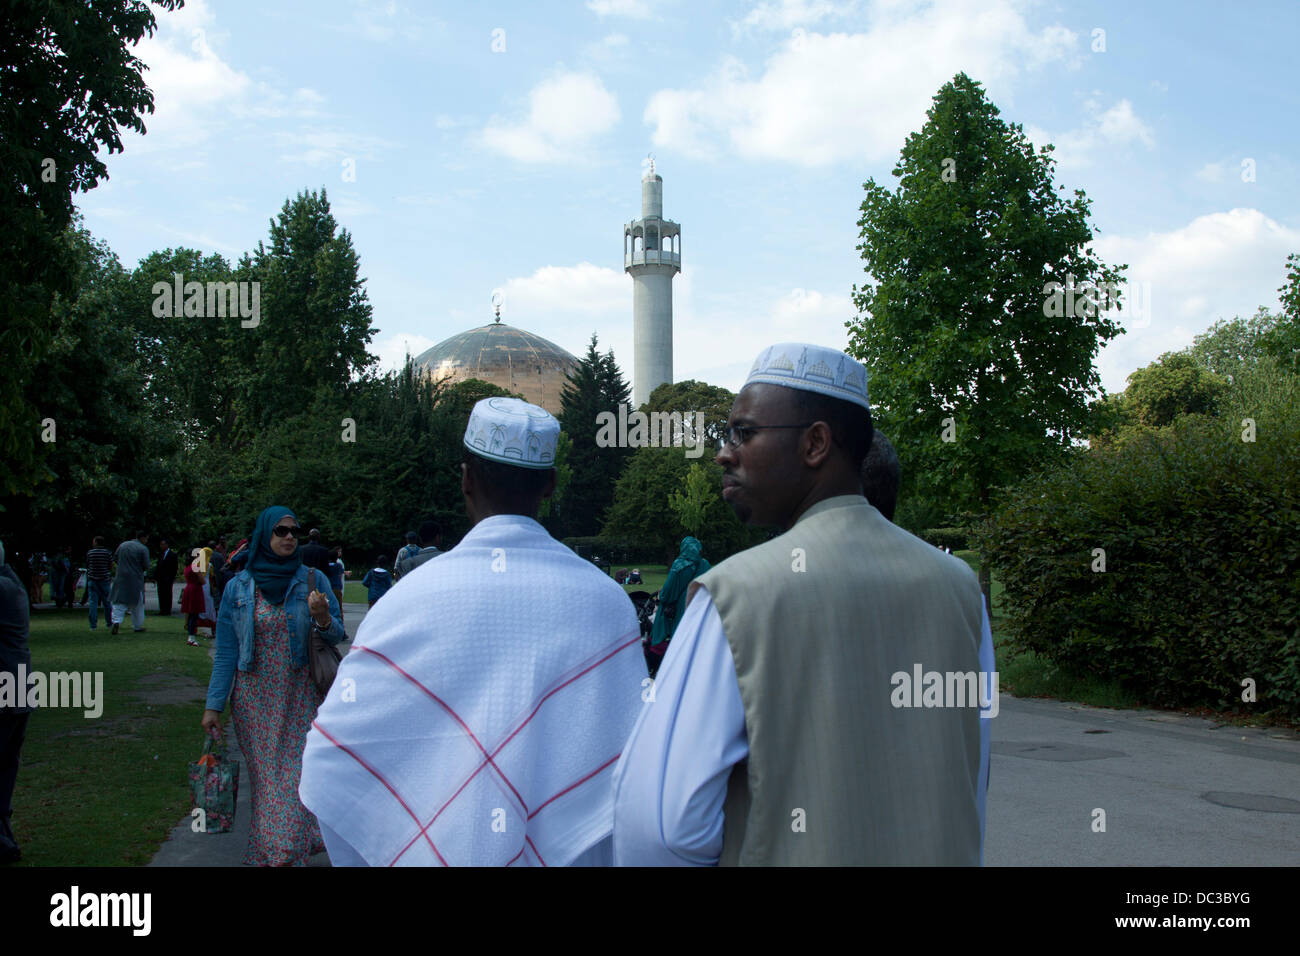 London, UK. 8th August 2013. A Muslim families  celebrates Eid at the Regent's Mosque n London which marks the - Stock Image